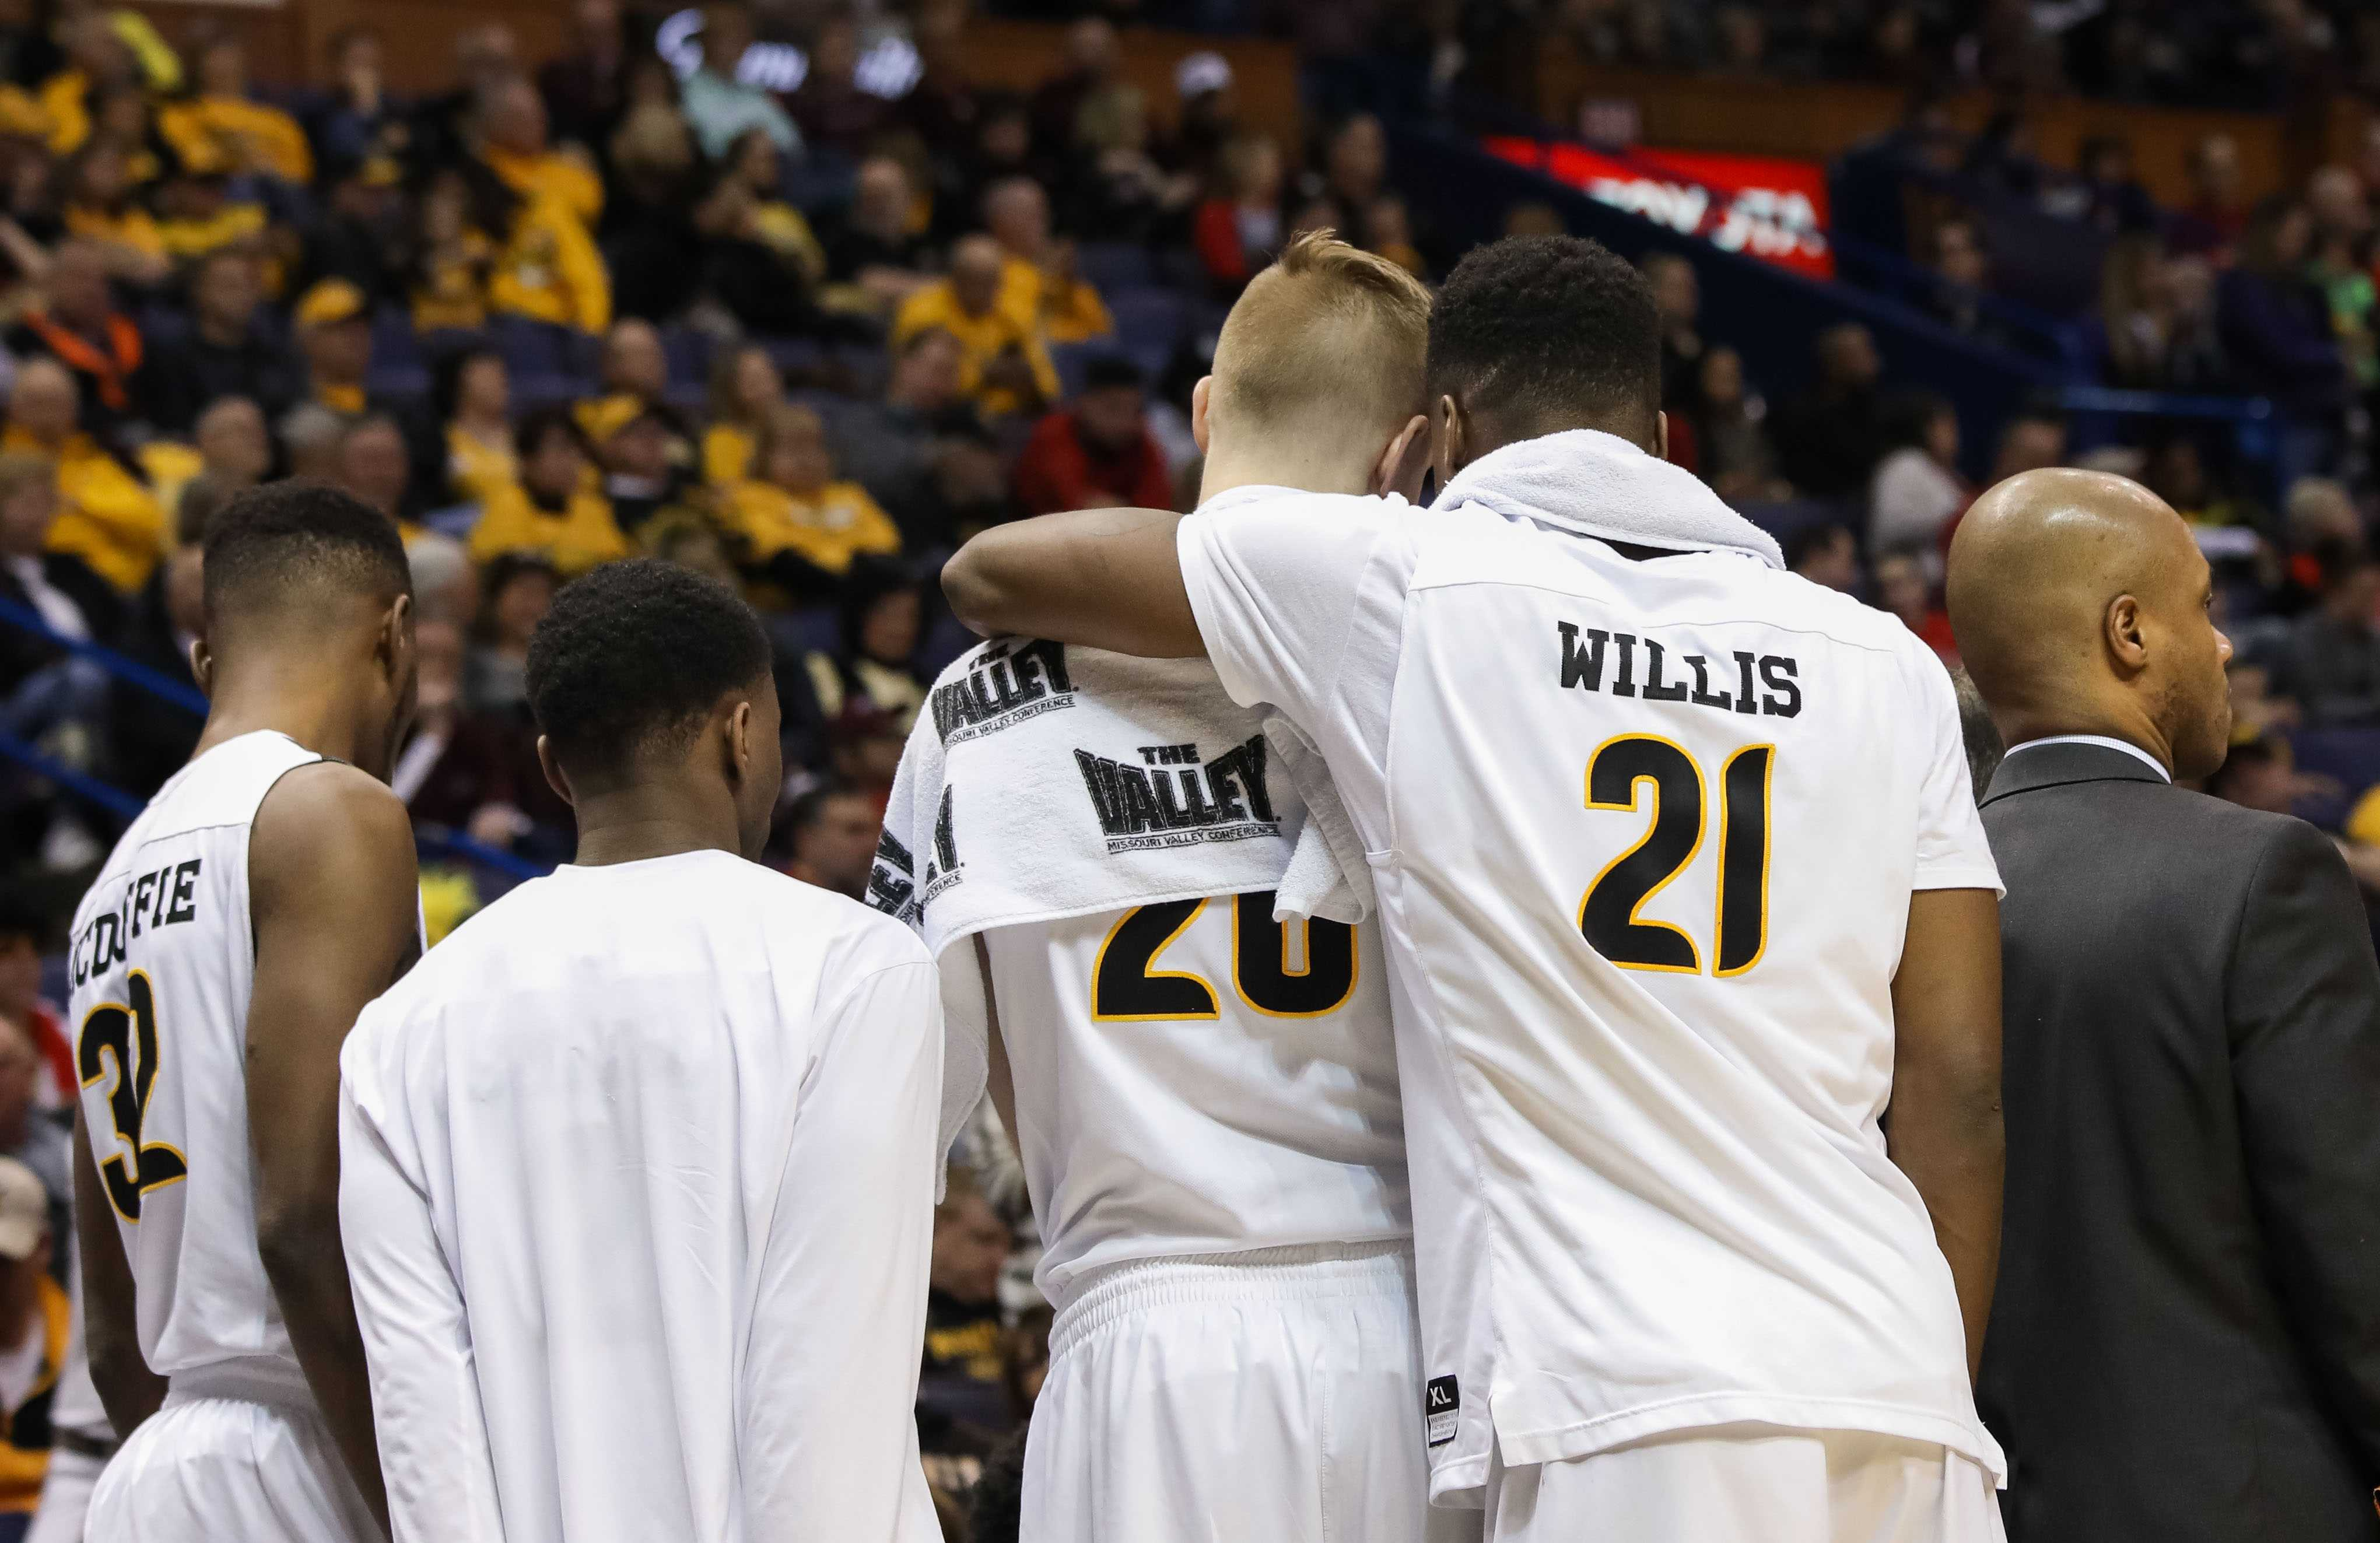 the sunflower photos shockers post triple digits surge past photos shockers post triple digits surge past maryland eastern shore